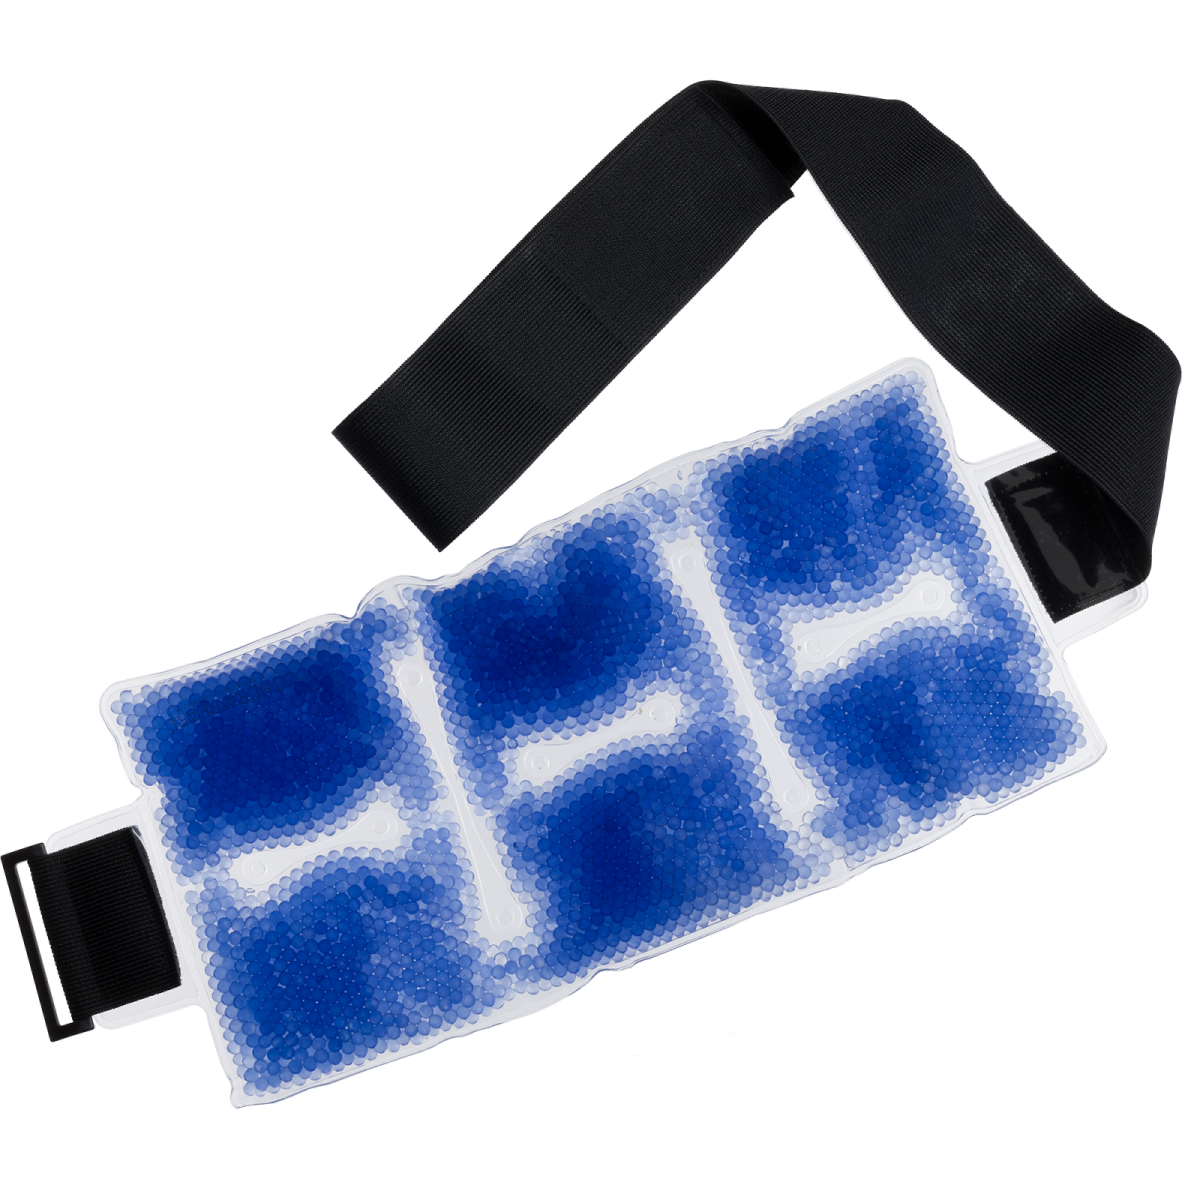 Therapearl Hot and Cold Therapy Packs